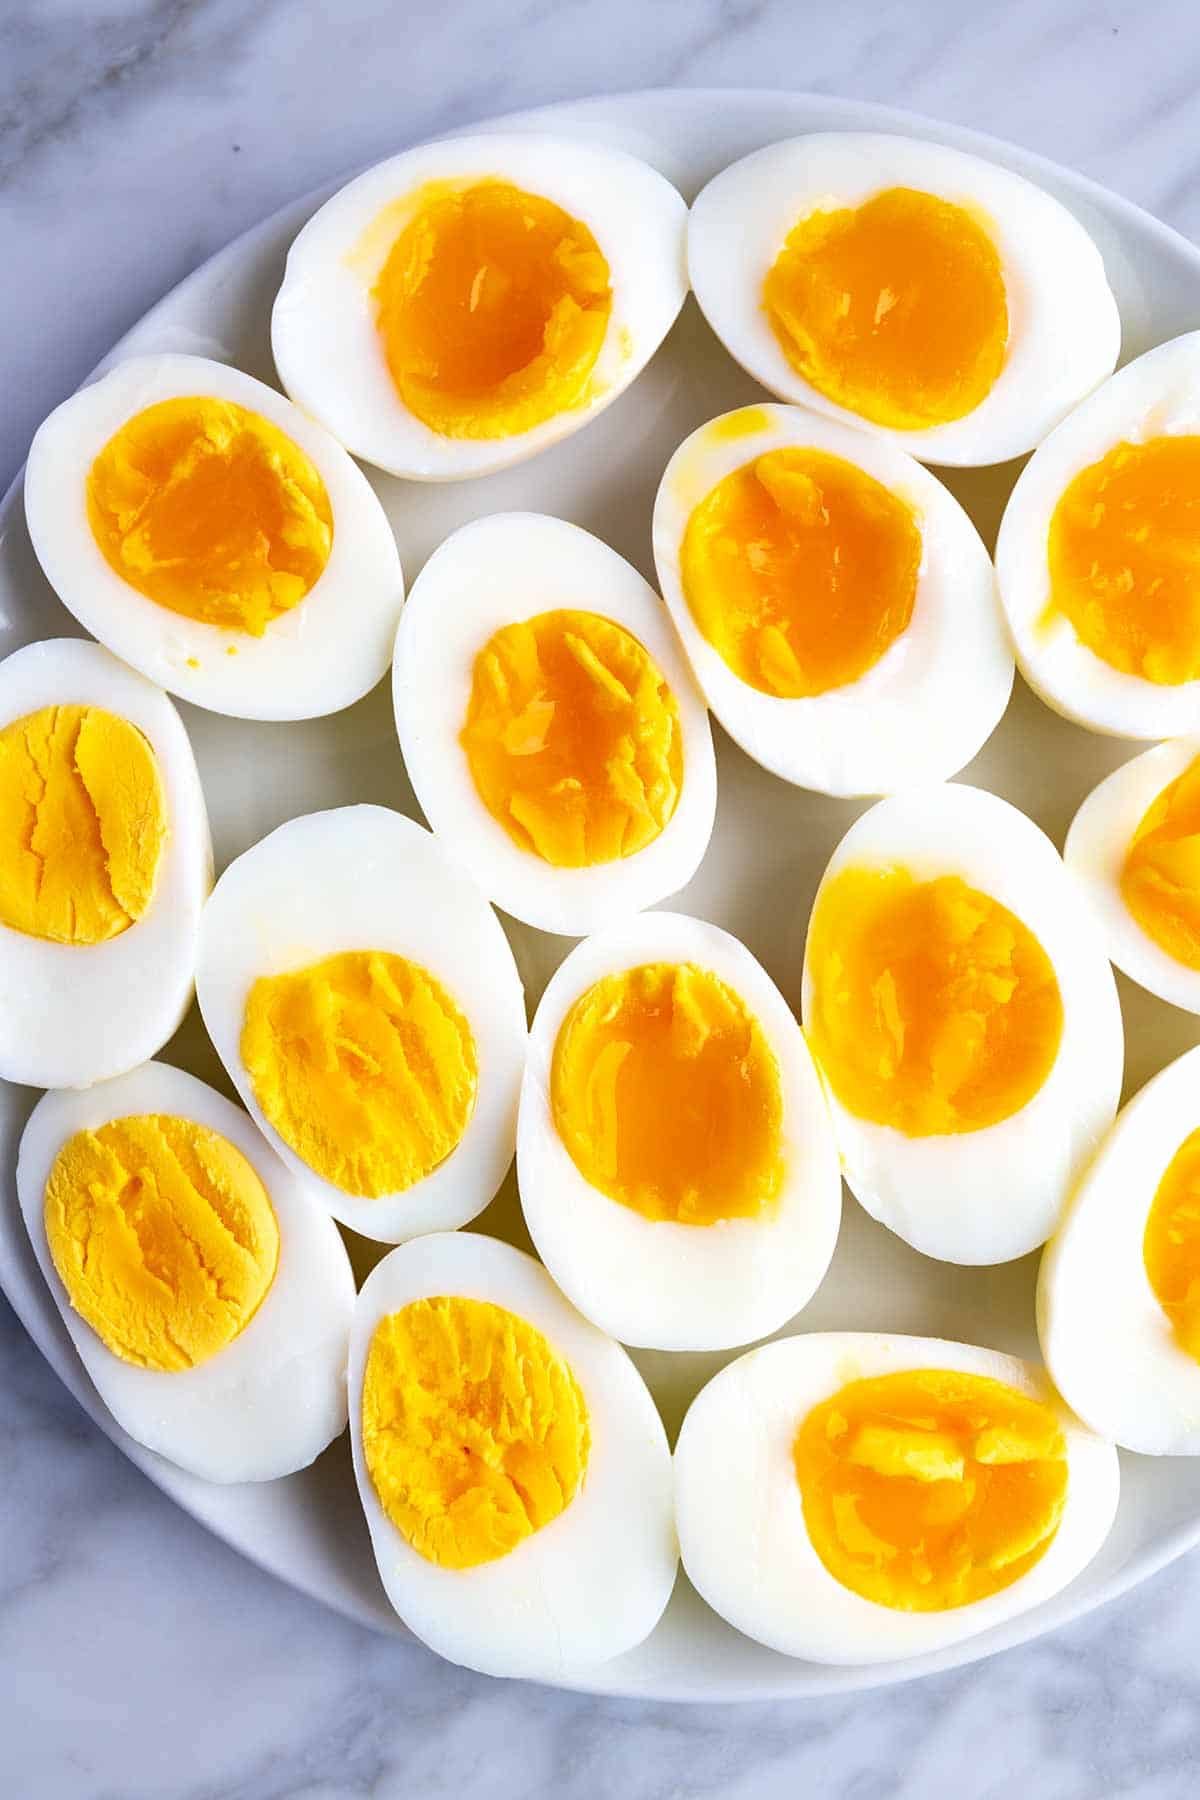 These Instant Pot eggs could not be simpler! If you are looking for a 100% foolproof method for how to cook eggs in your Instant Pot or pressure cooker, you have found it.